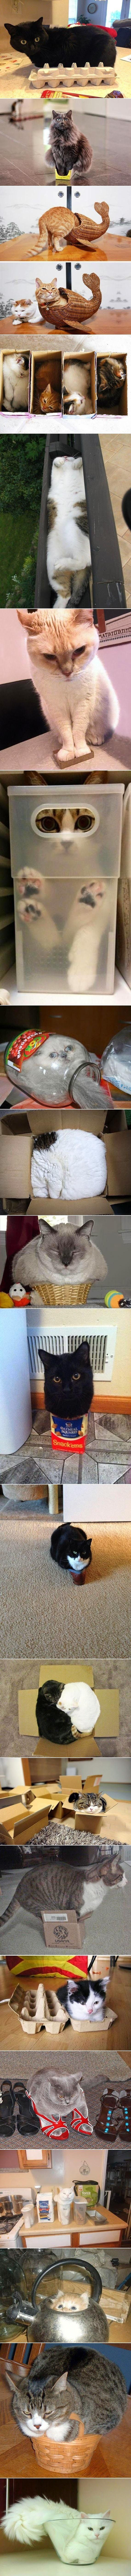 kittys // funny pictures - funny photos - funny images - funny pics - funny quotes - #lol #humor #funnypictures